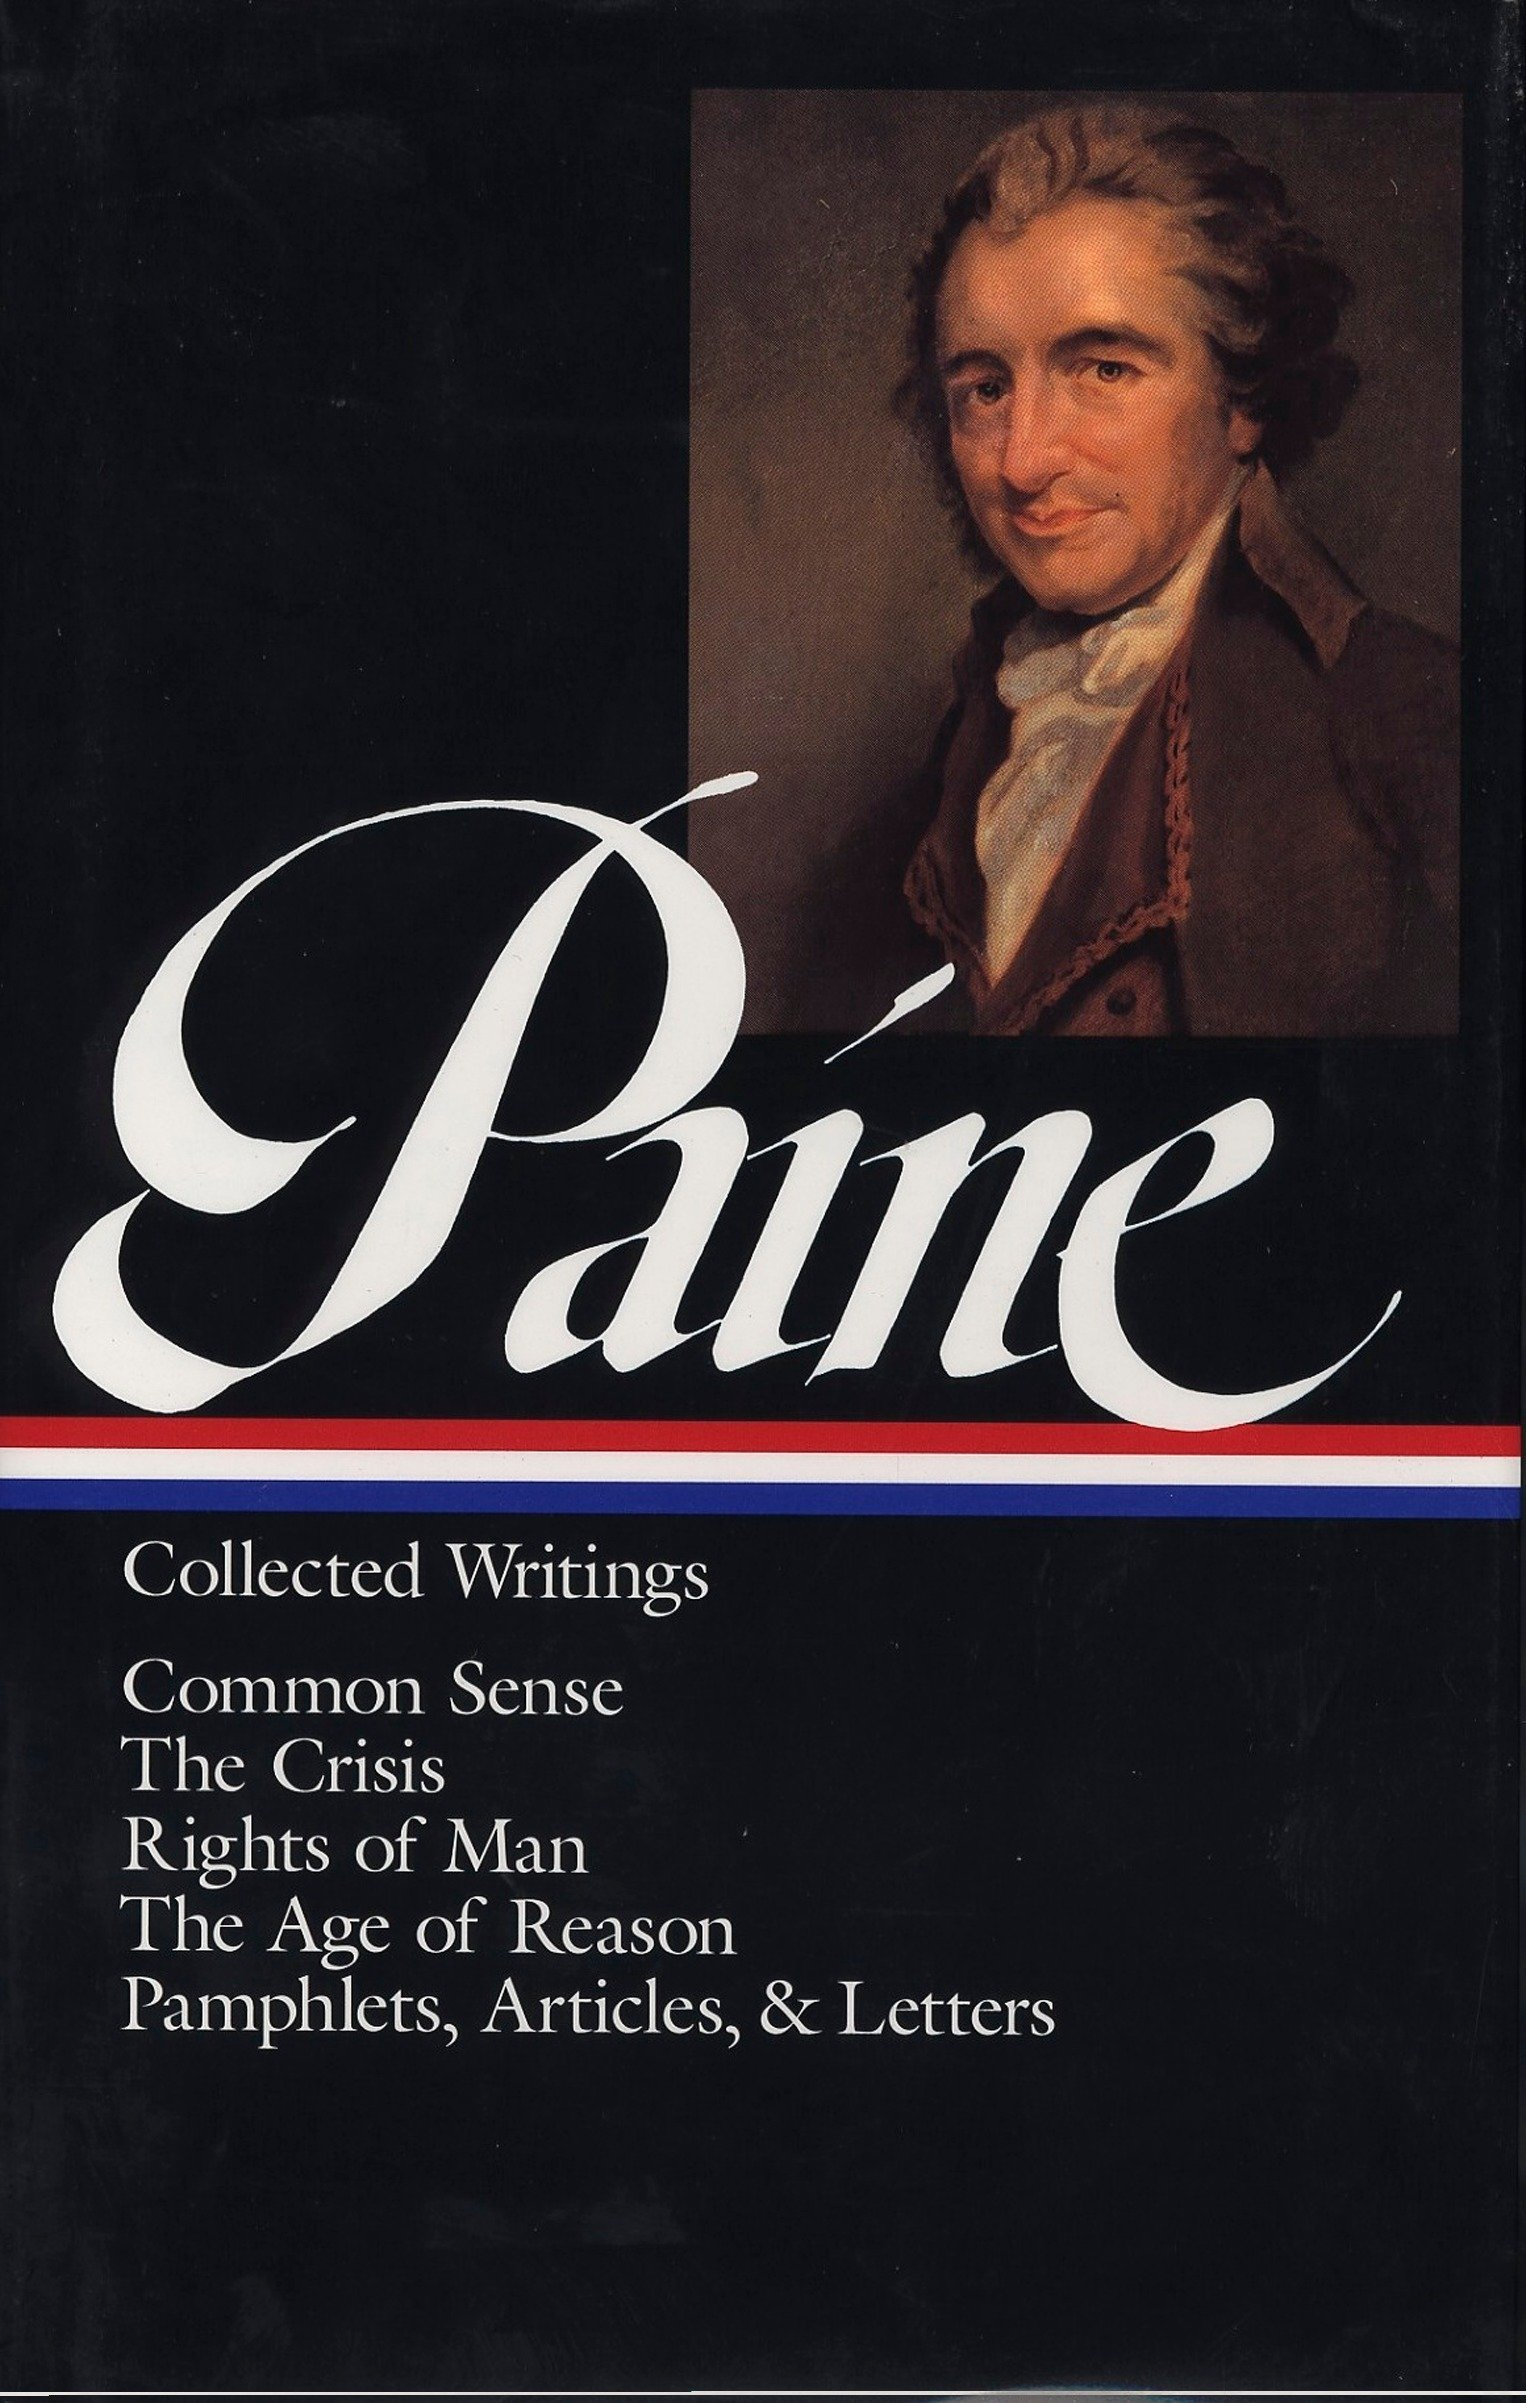 Thomas Paine : Collected Writings : Common Sense / The Crisis / Rights of  Man / The Age of Reason / Pamphlets, Articles, and Letters (Library of  America): Thomas Paine, Eric Foner: 9781883011031: Amazon.com: Books